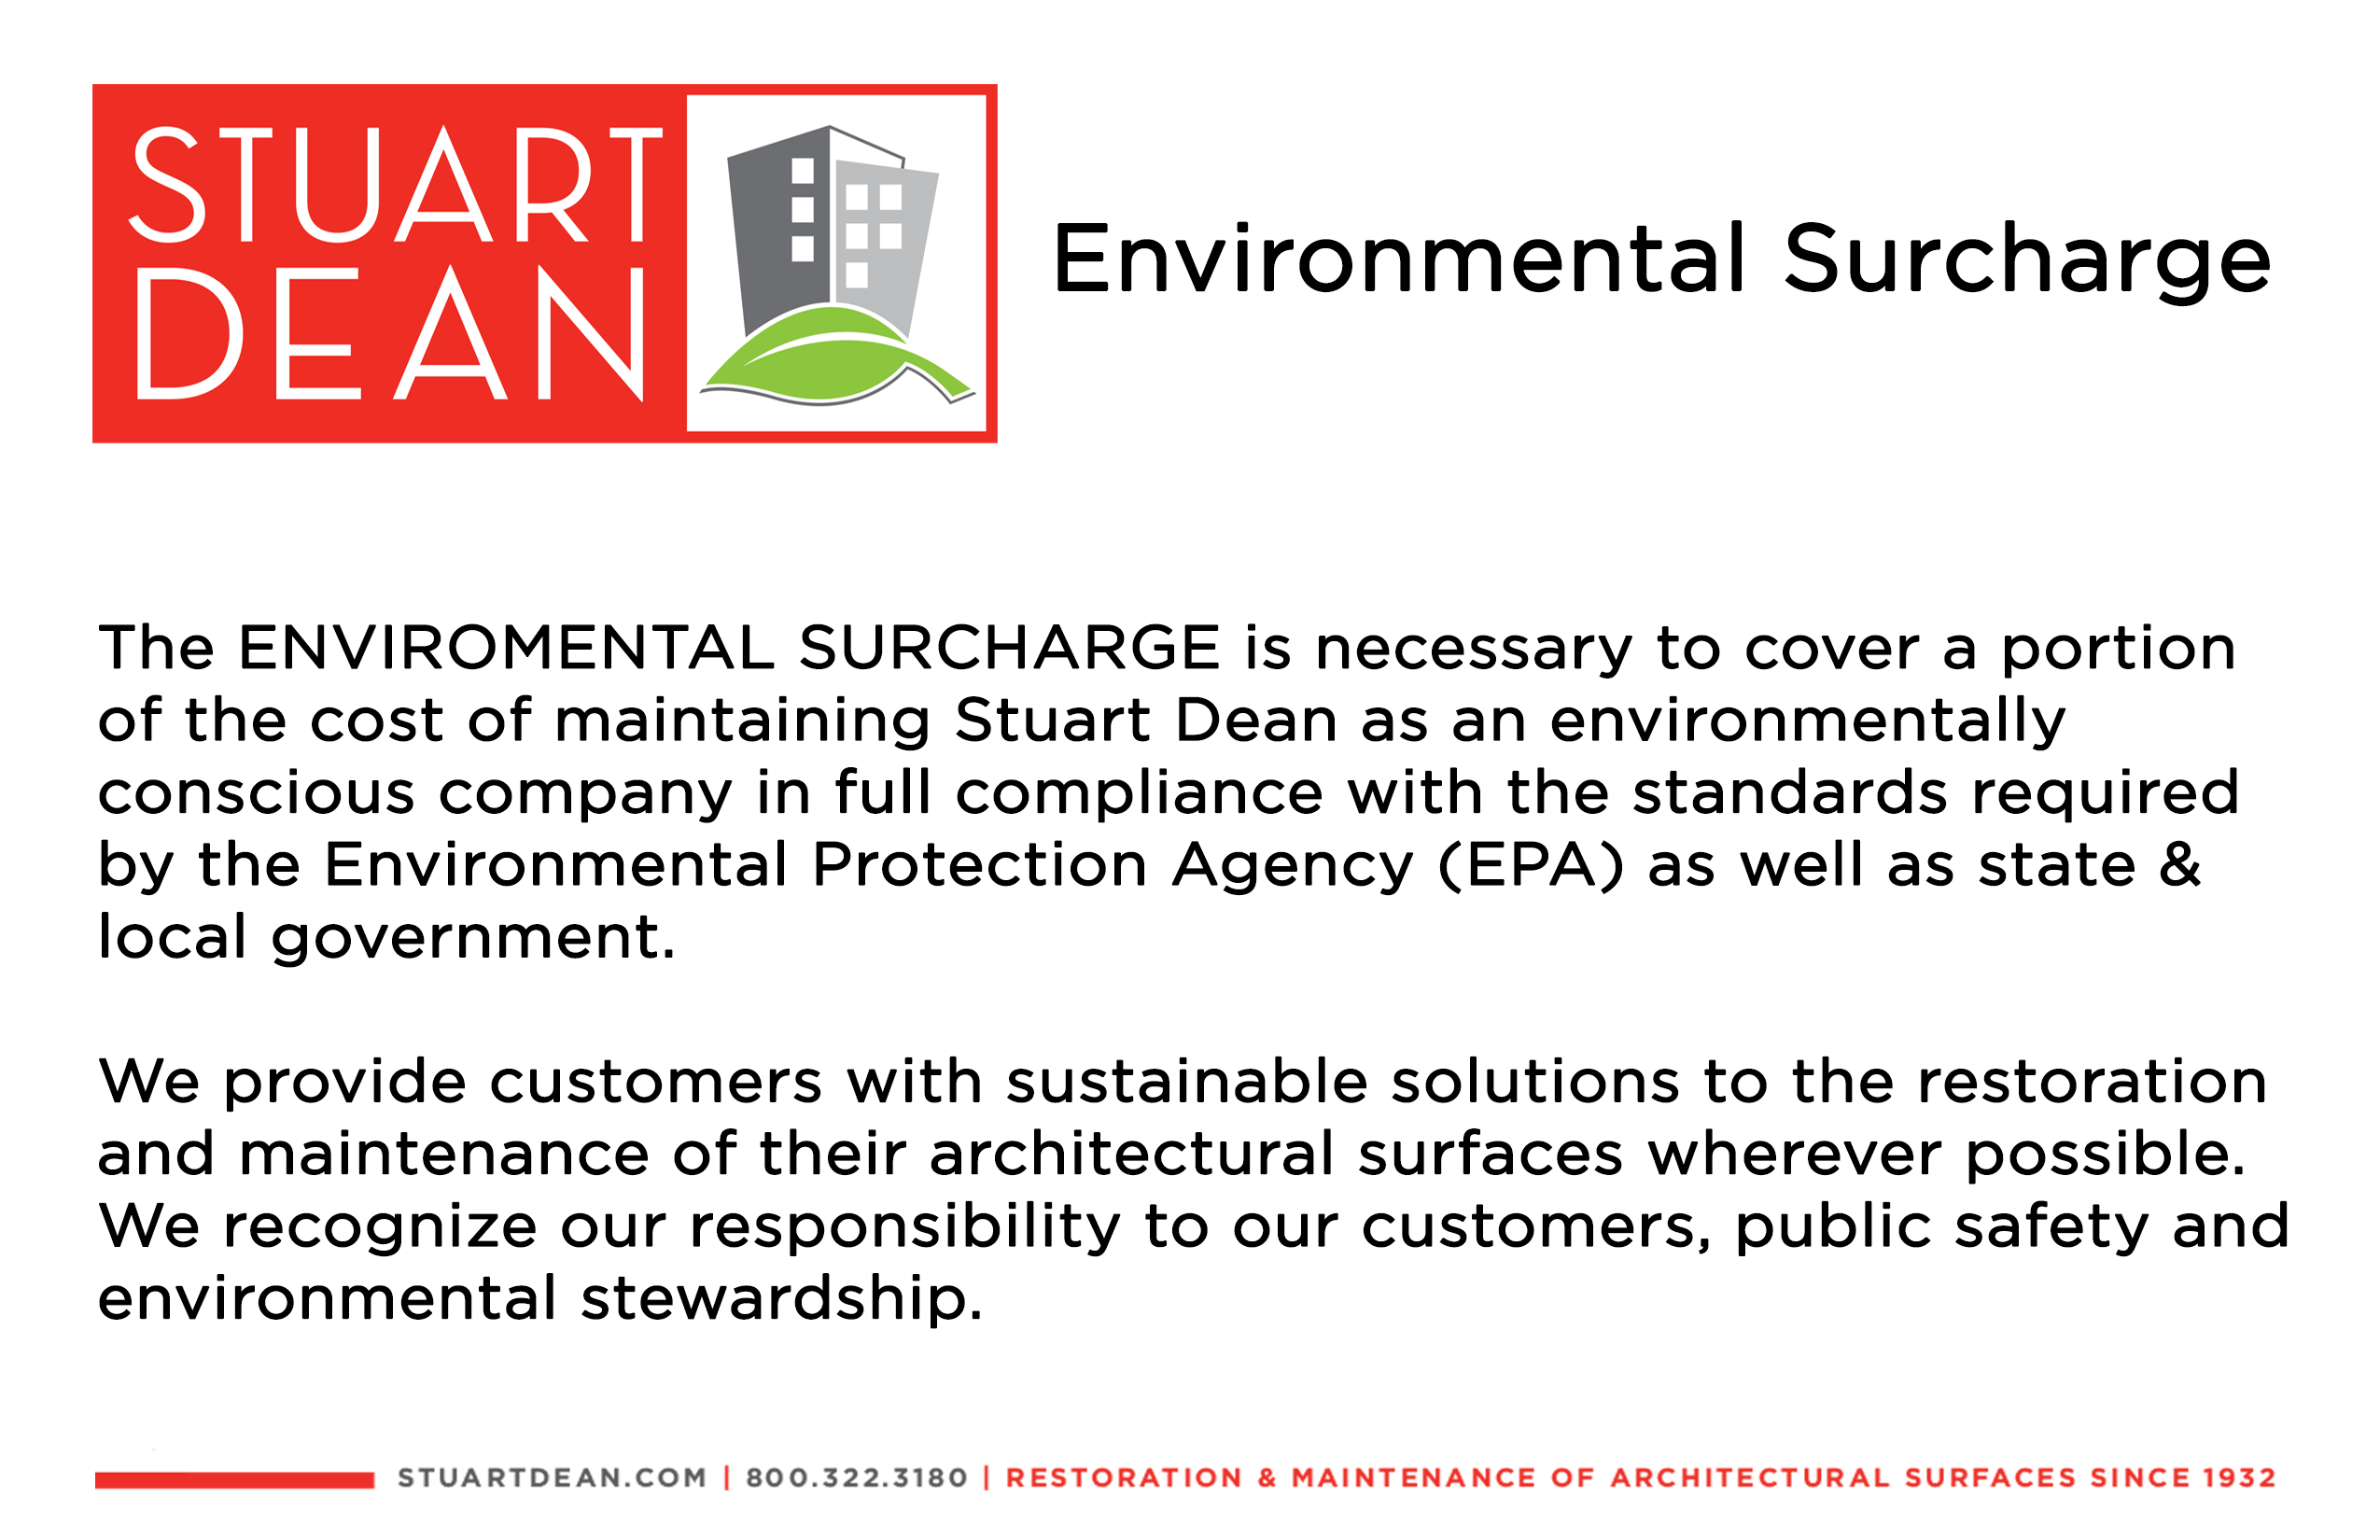 Environmental Surcharge